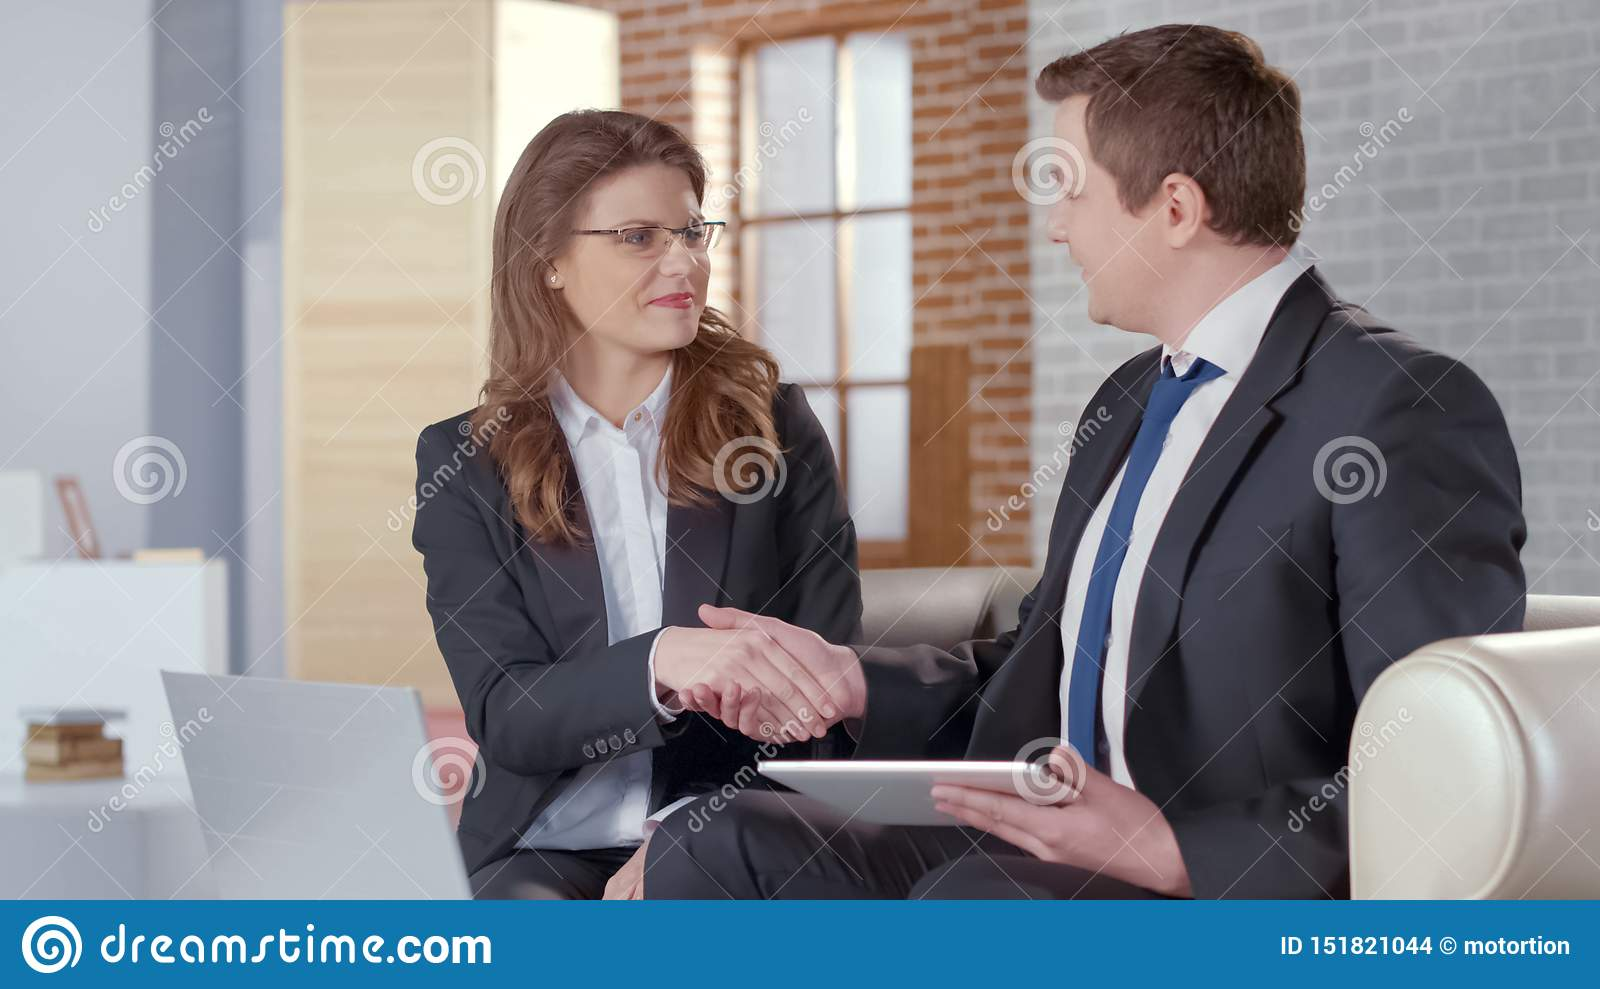 Positive male and female business partners shaking hands, successful agreement